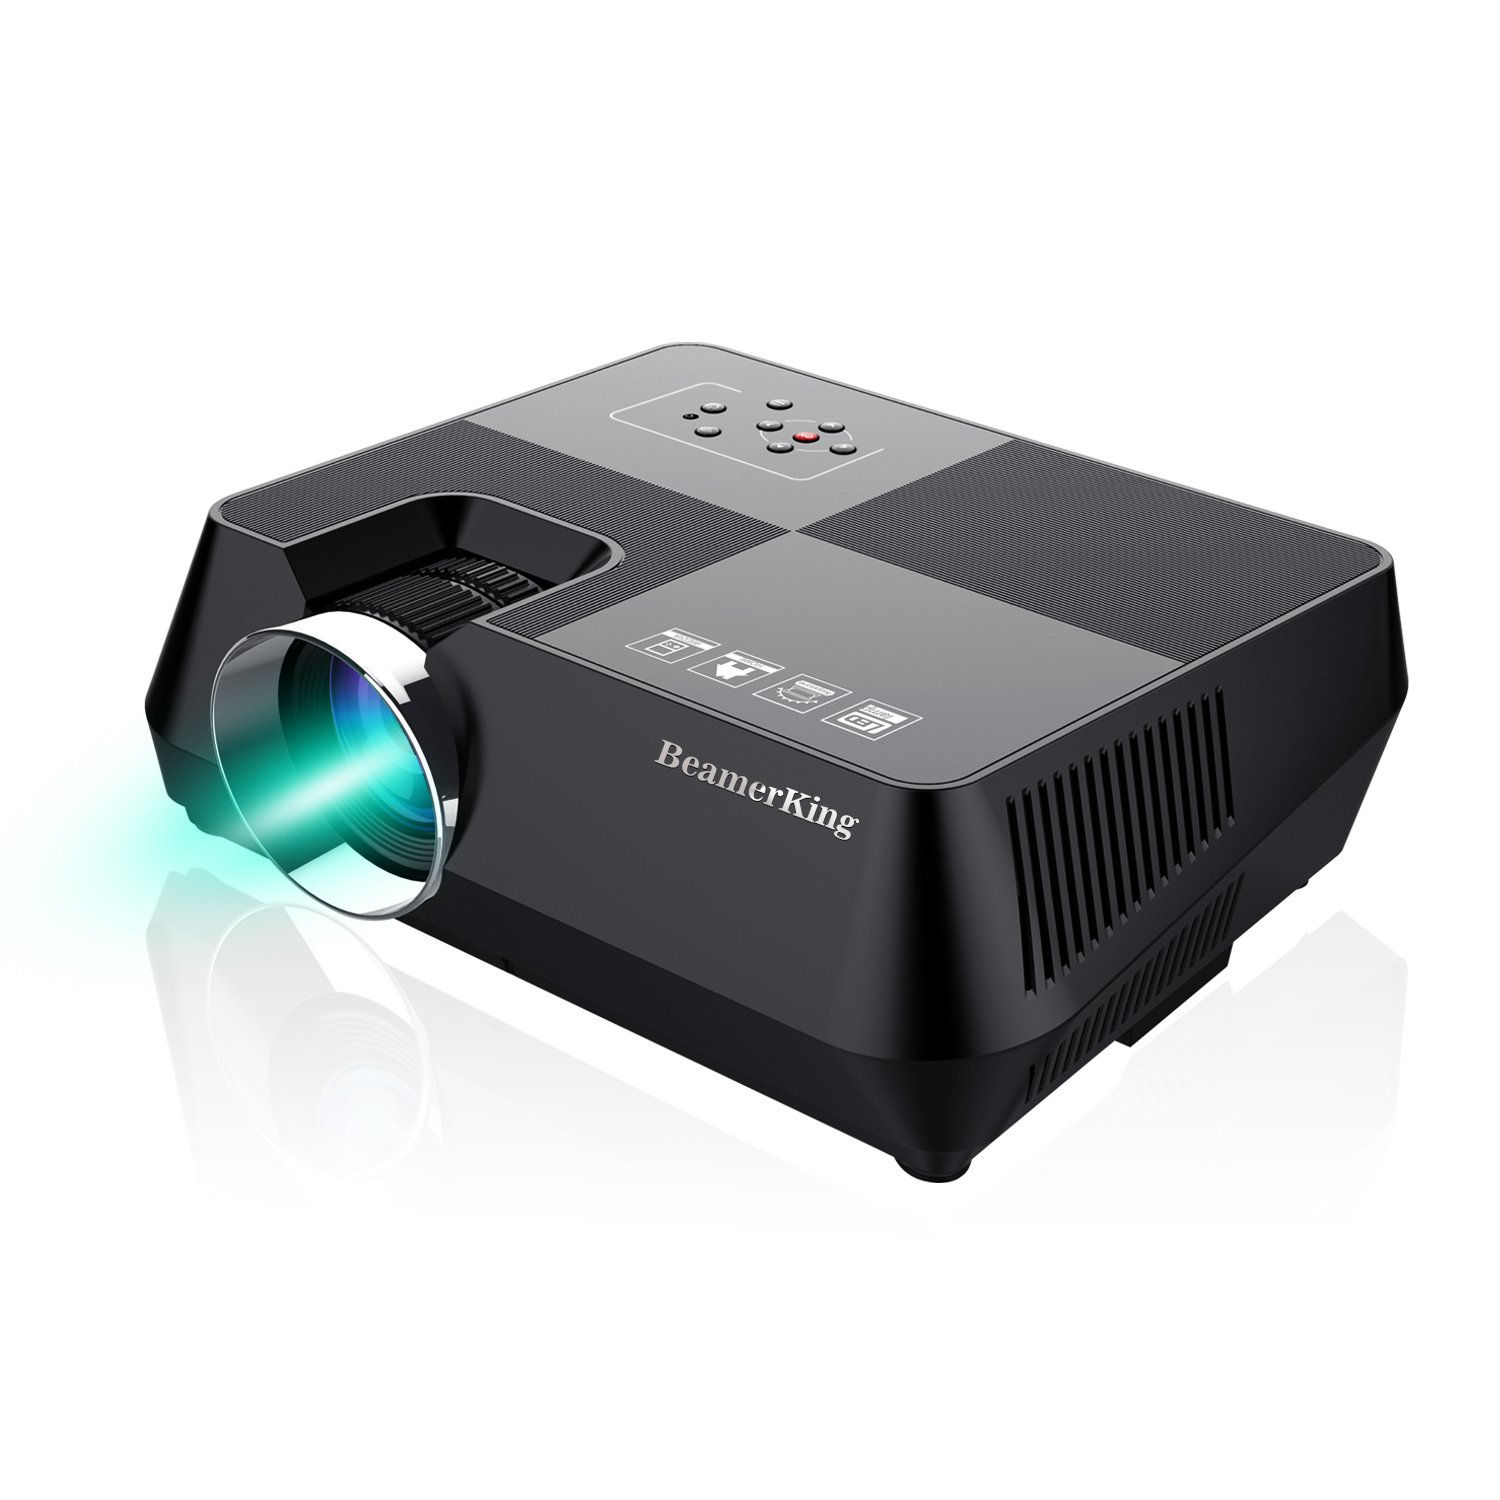 Video Projector Movie Home Theater +30% Lumens Portable Led Projector Mini Projector Up 170 inches Display Support Full HD 1080P HDMI USB VGA AV for iPhone Laptop Android Smartphone PS4 by BeamerKing